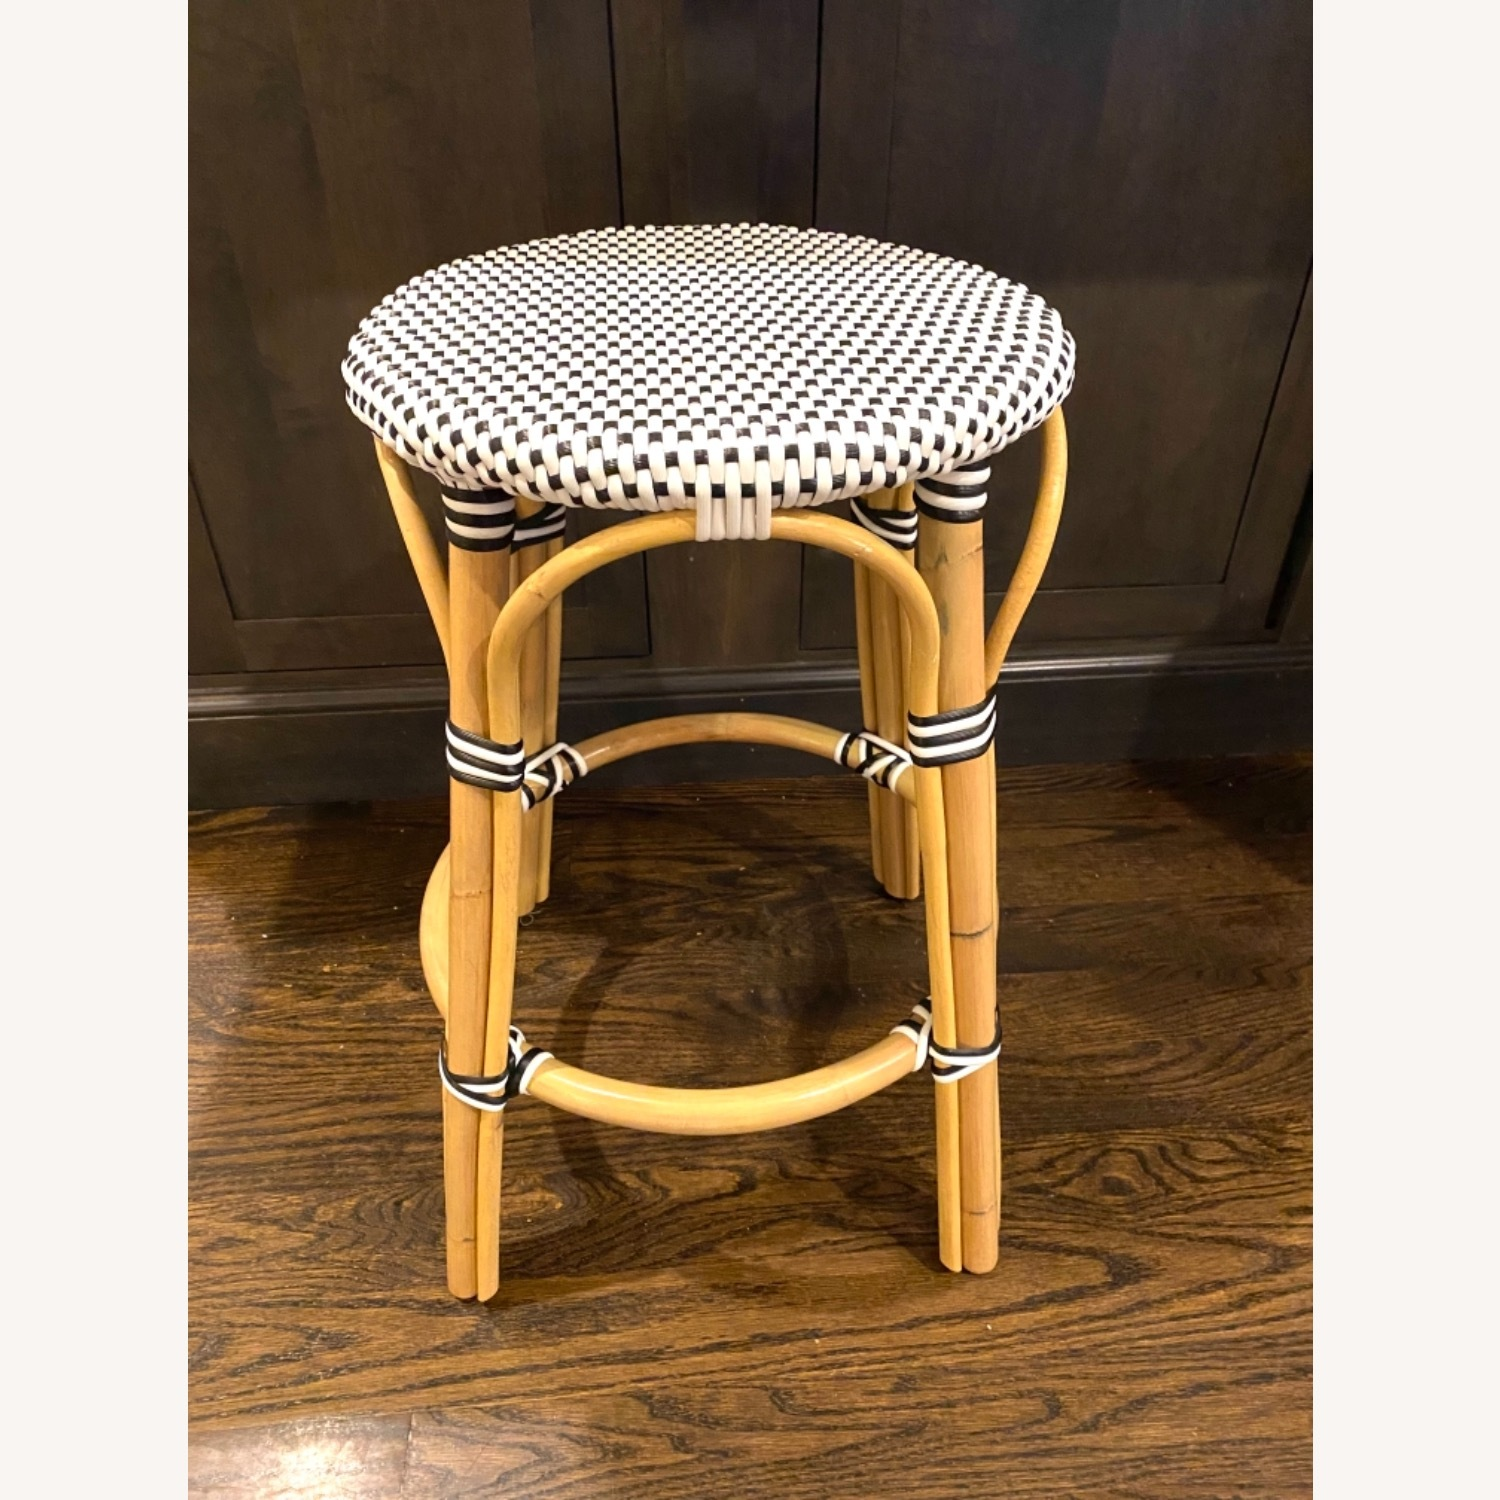 Wayfair (Serena Lily style) Counter Stools - image-1